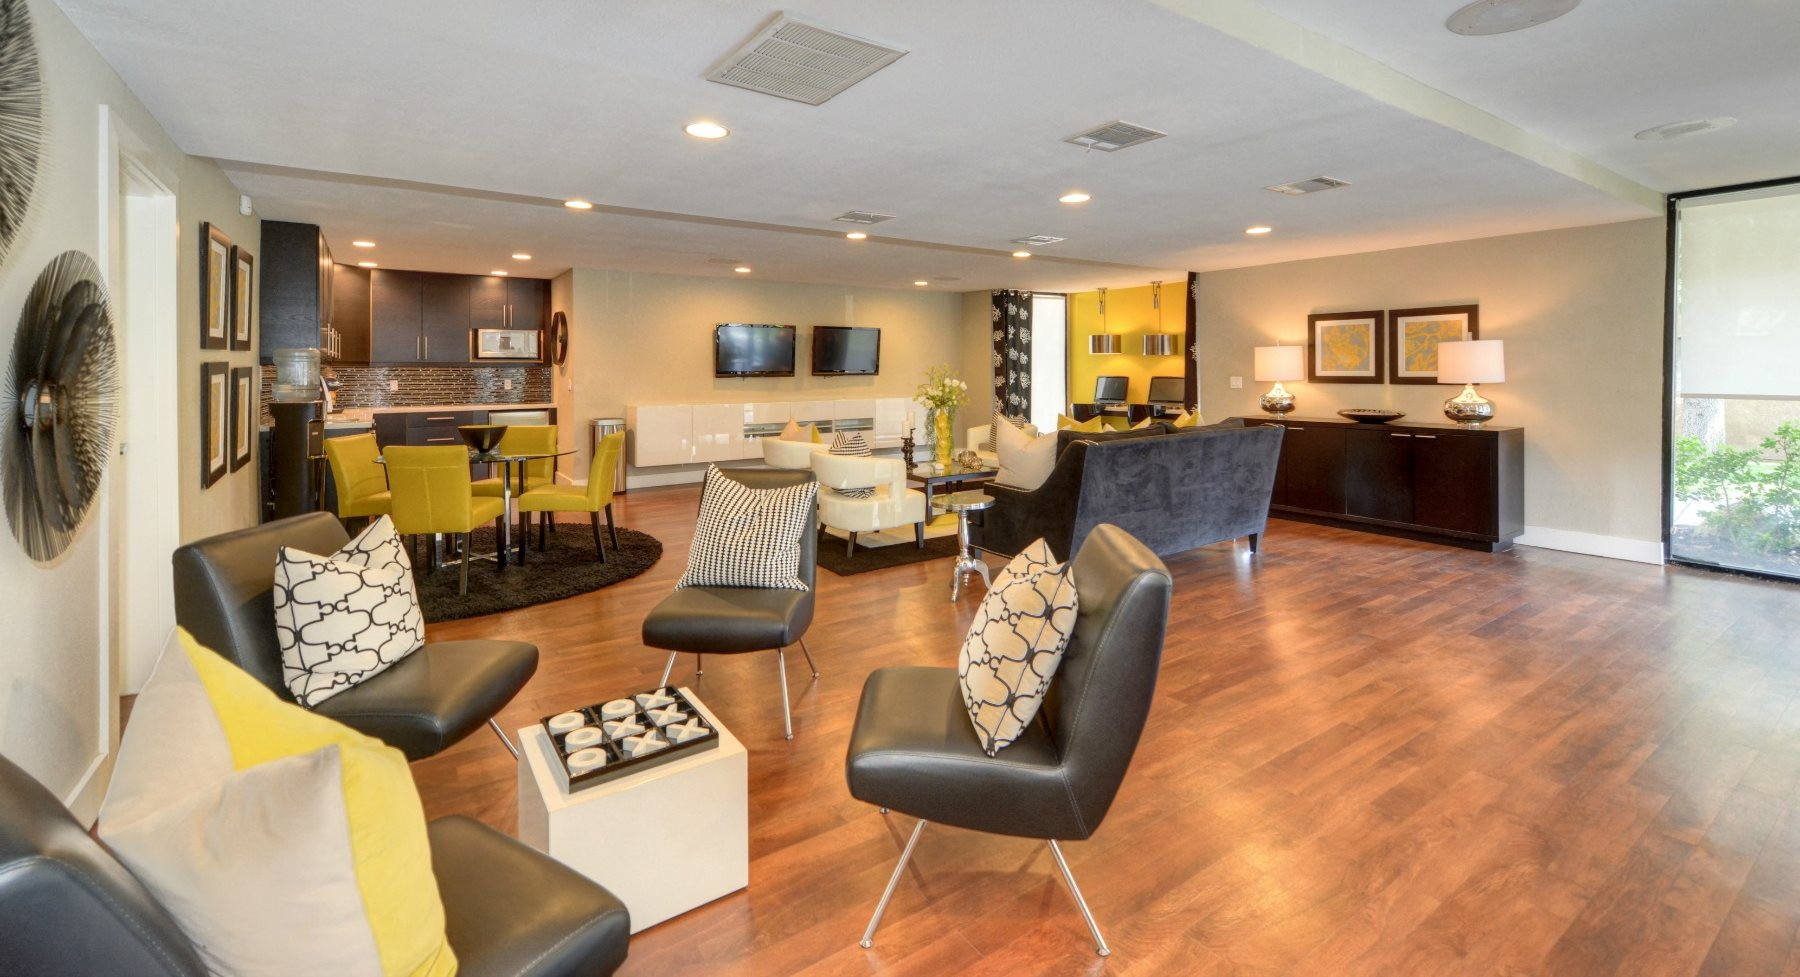 Clubhouse Lounge Area with Hardwood Inspired Floors, Black Sofa Chairs, Windows, and View of Kitchen Area